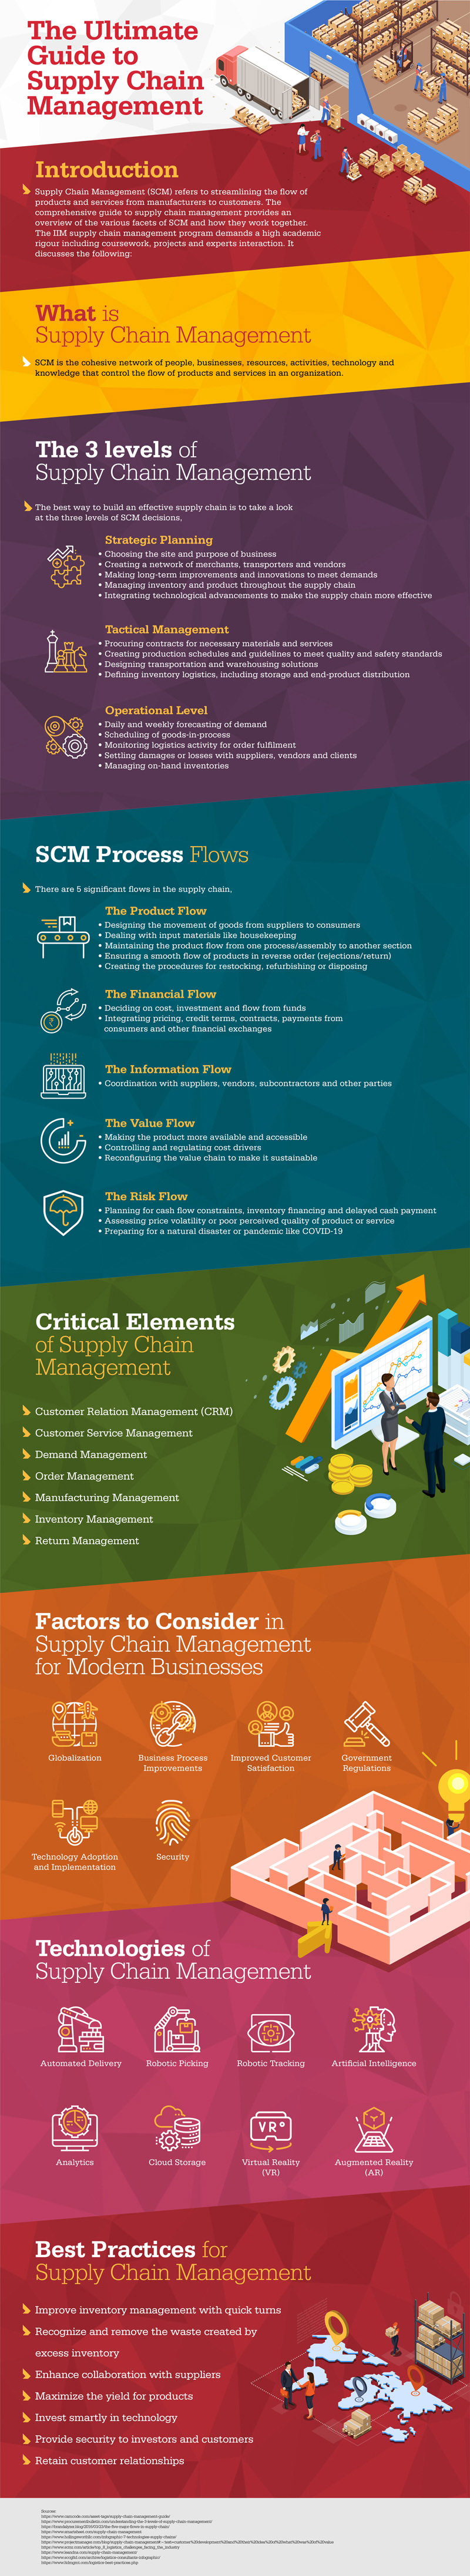 The Ultimate Guide to Supply Chain Management